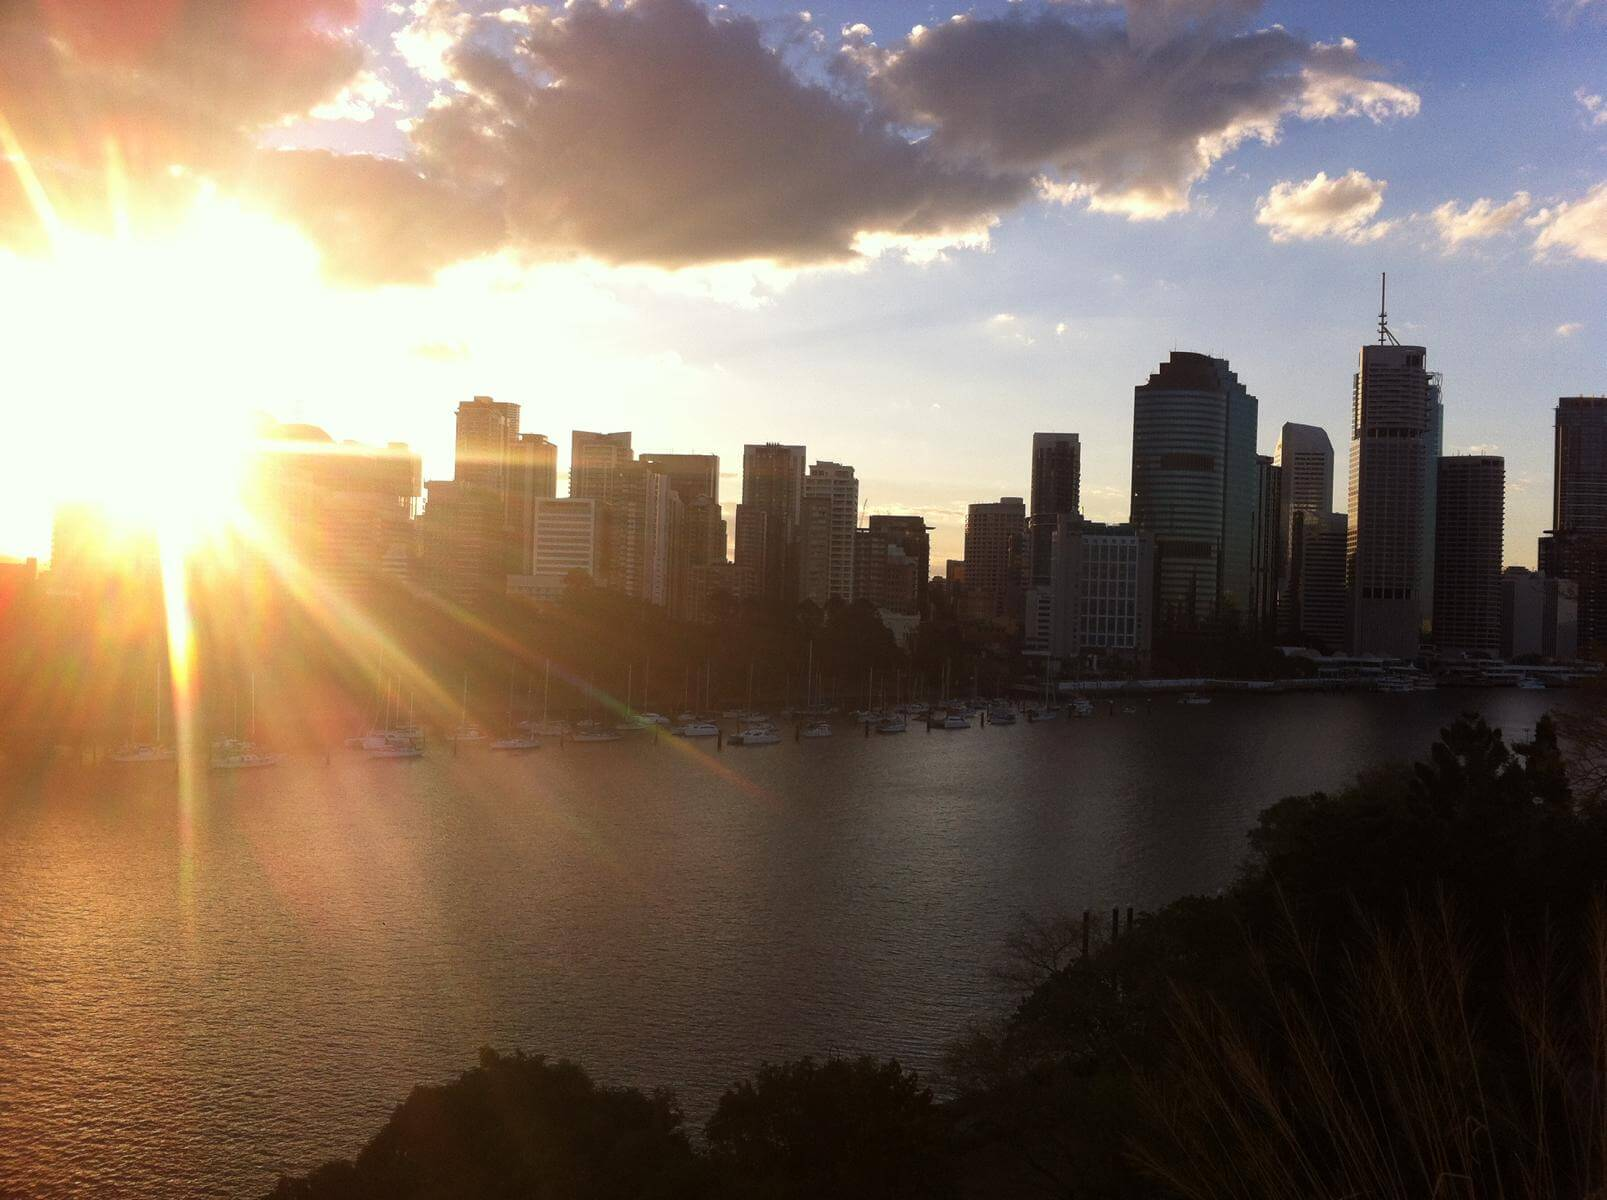 Sonnenuntergang in Brisbane